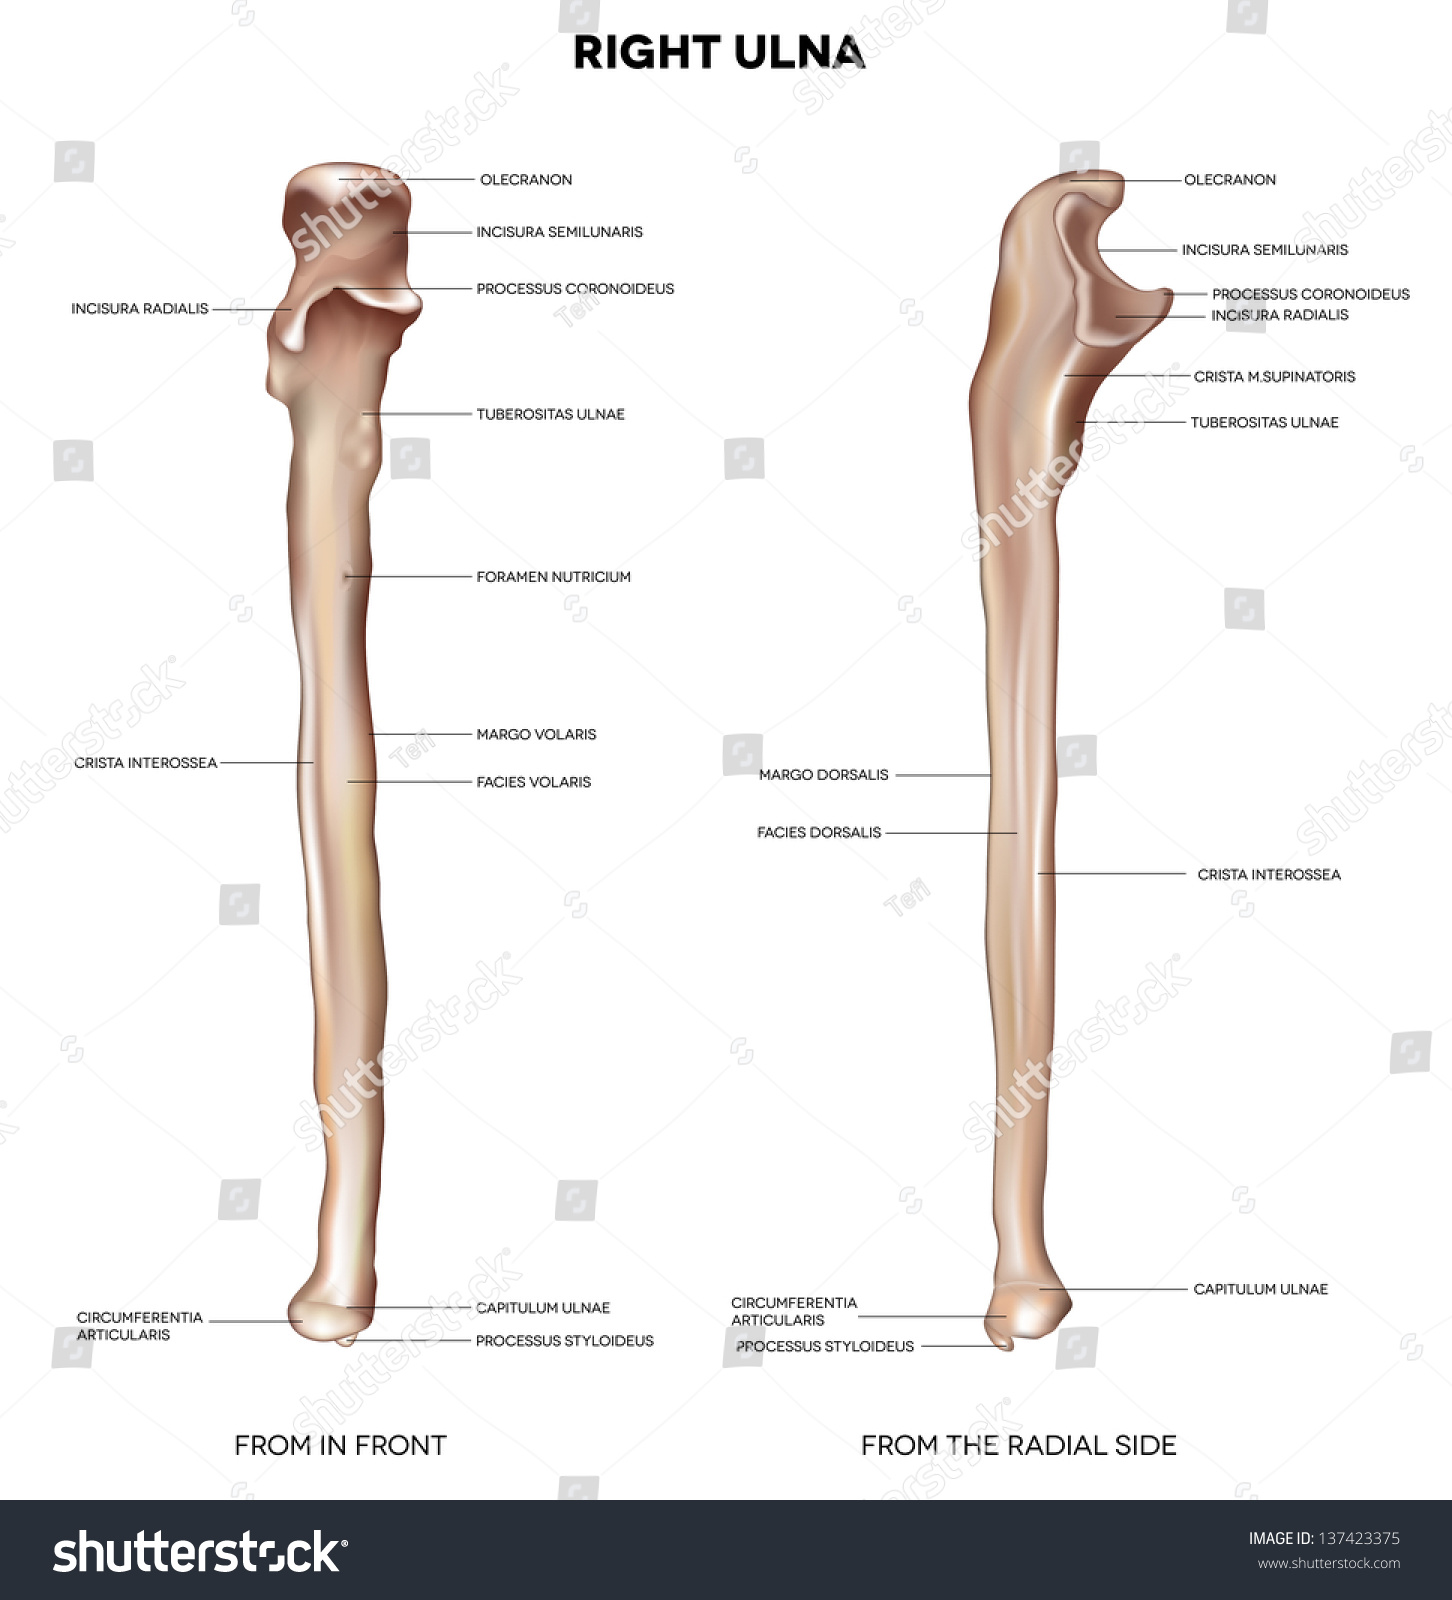 Stock Photo Ulna Detailed Medical Illustration From In Front And The Radial Side Latin Medical Terms